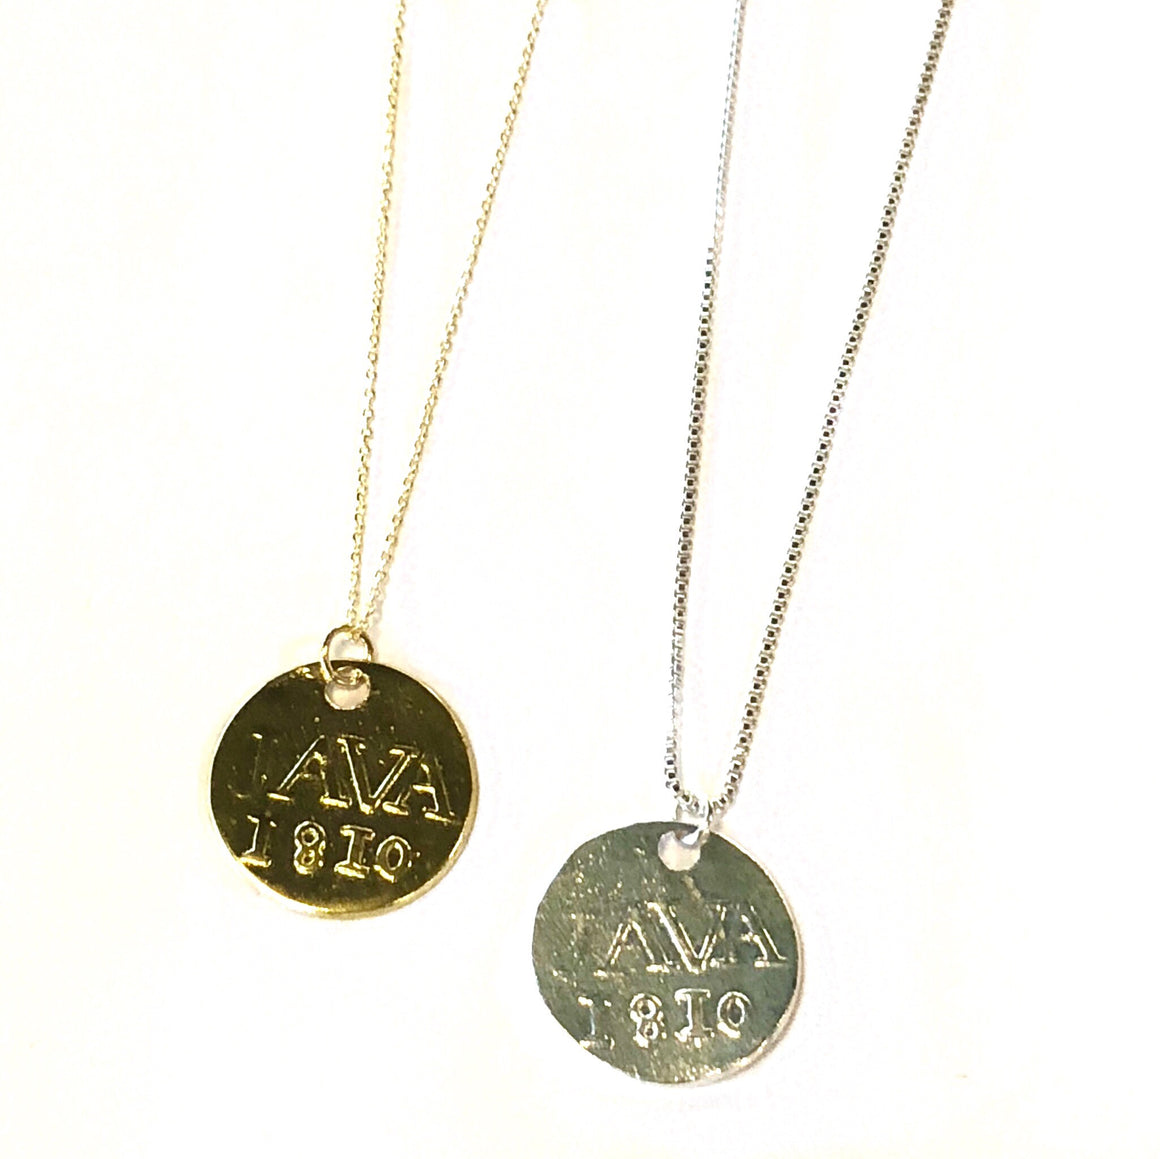 Mid Length Netherlands Coin Necklace - Nikki Smith Designs